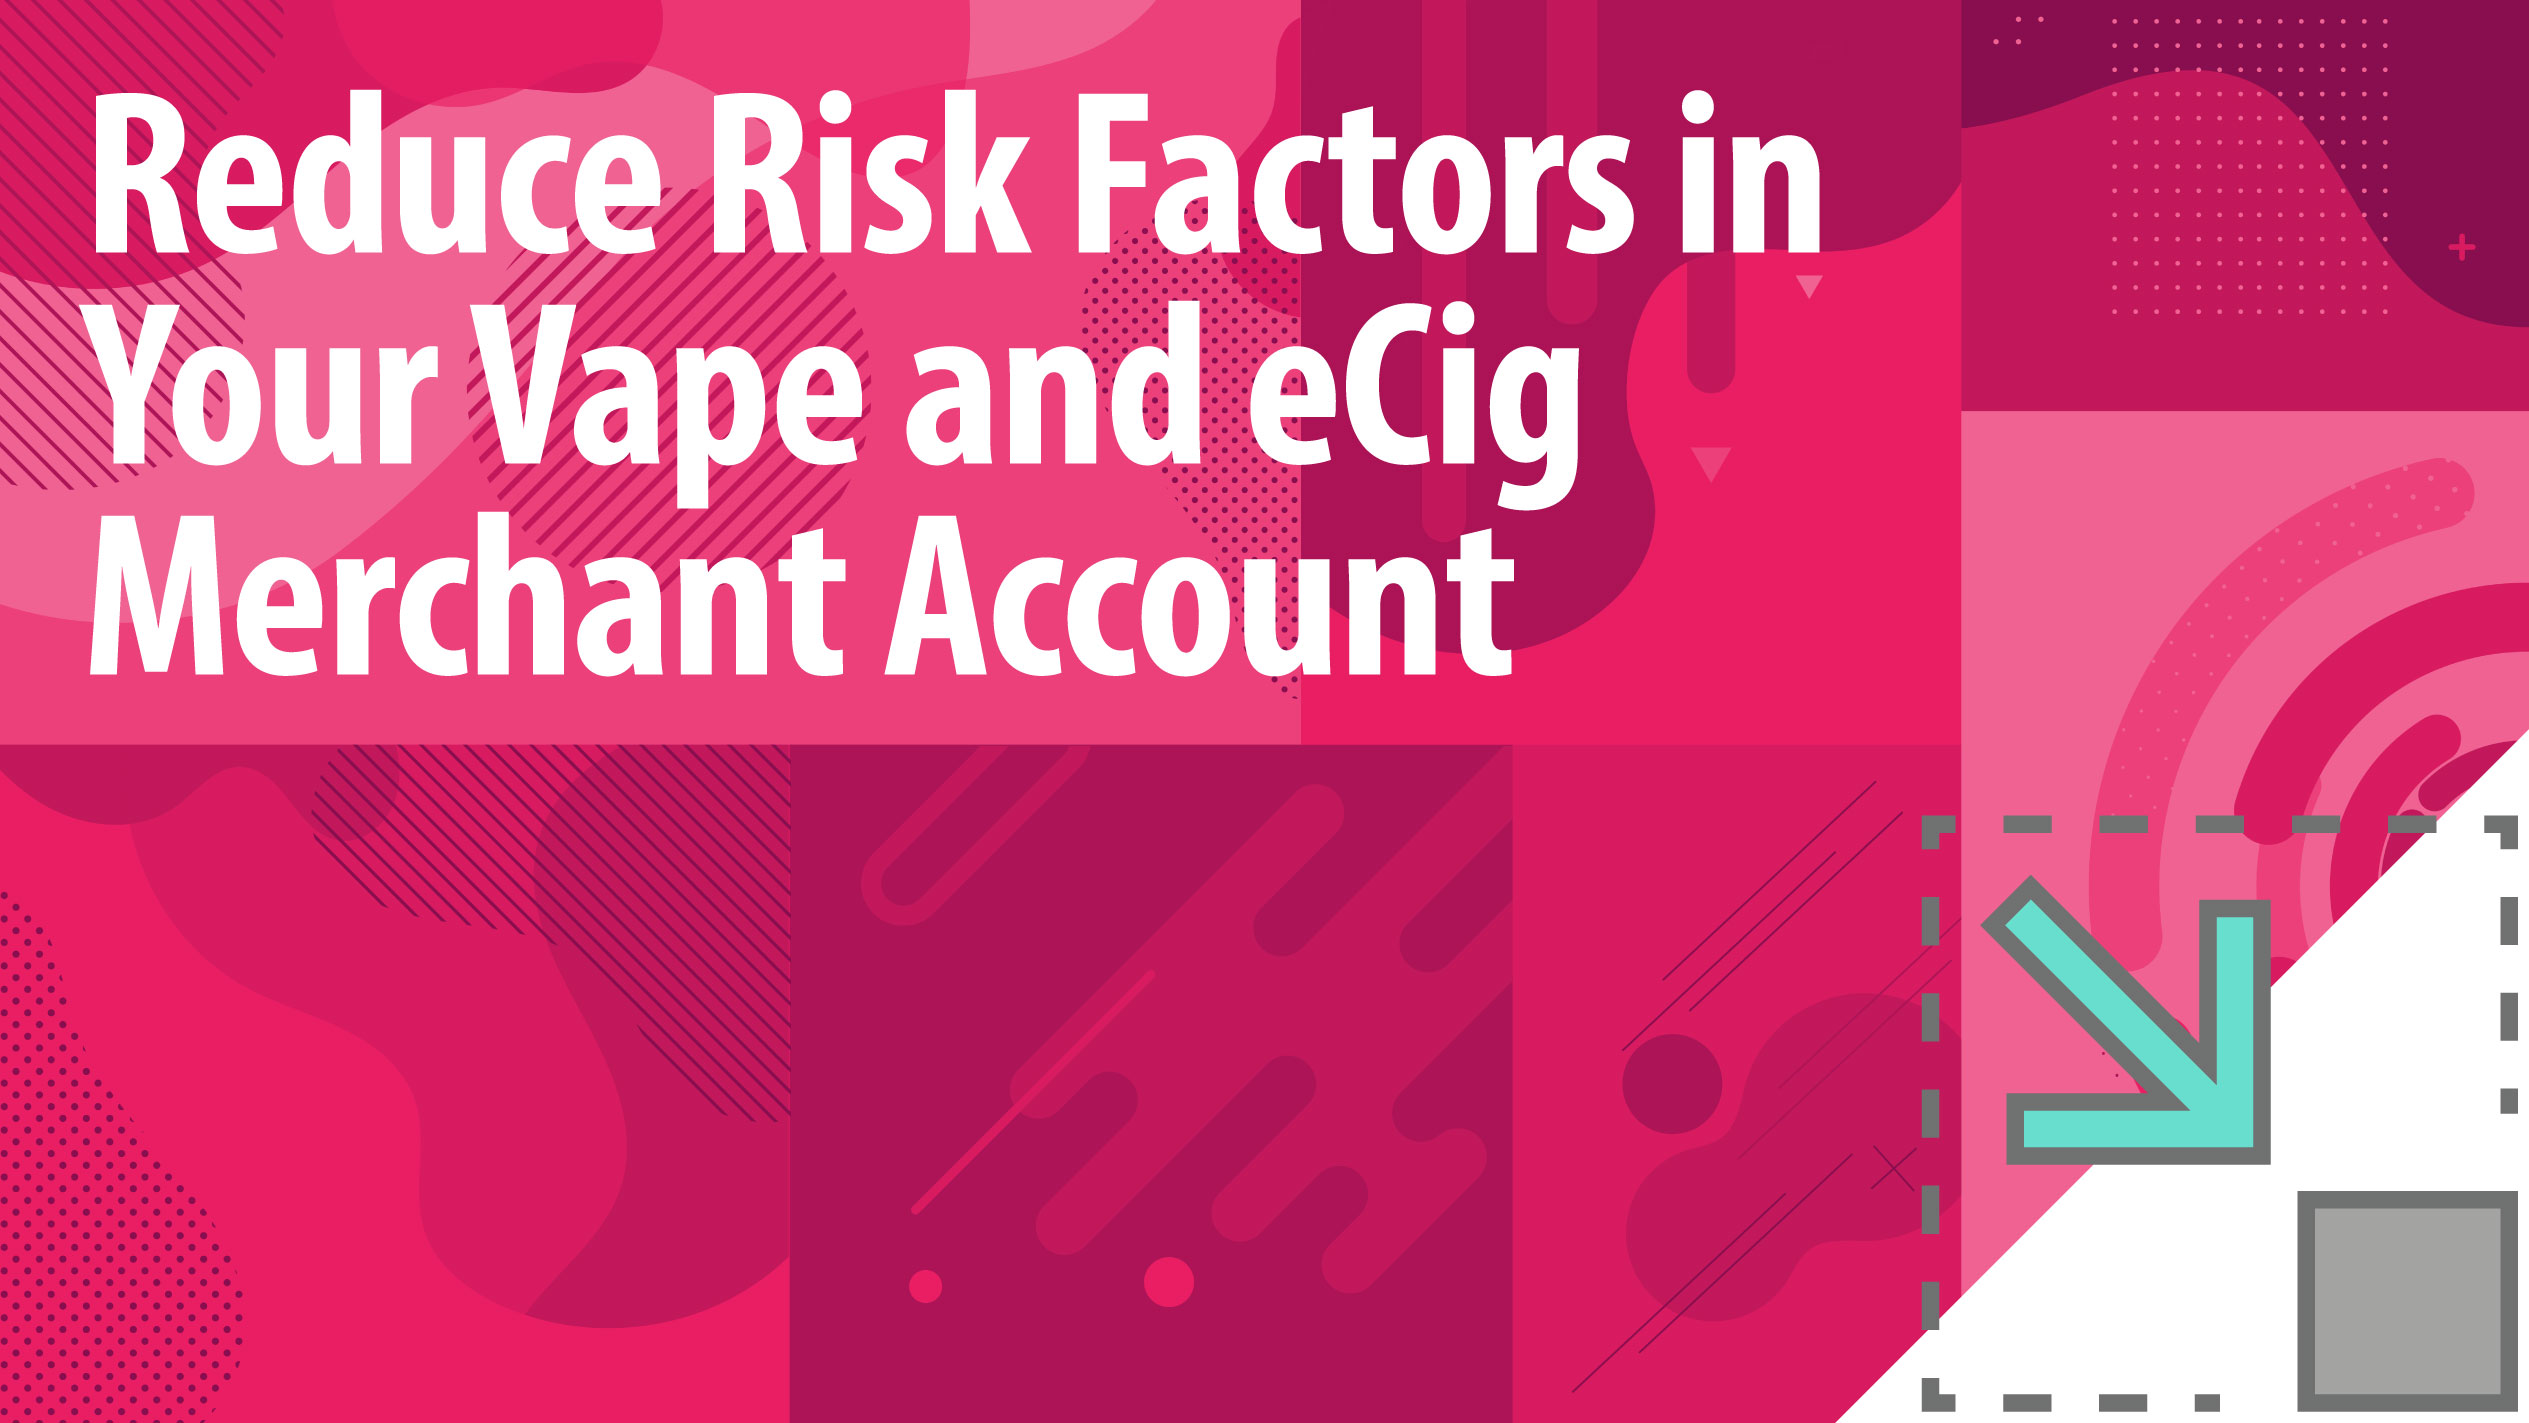 Reduce Risk Factors in Your Vape and eCig Merchant Account